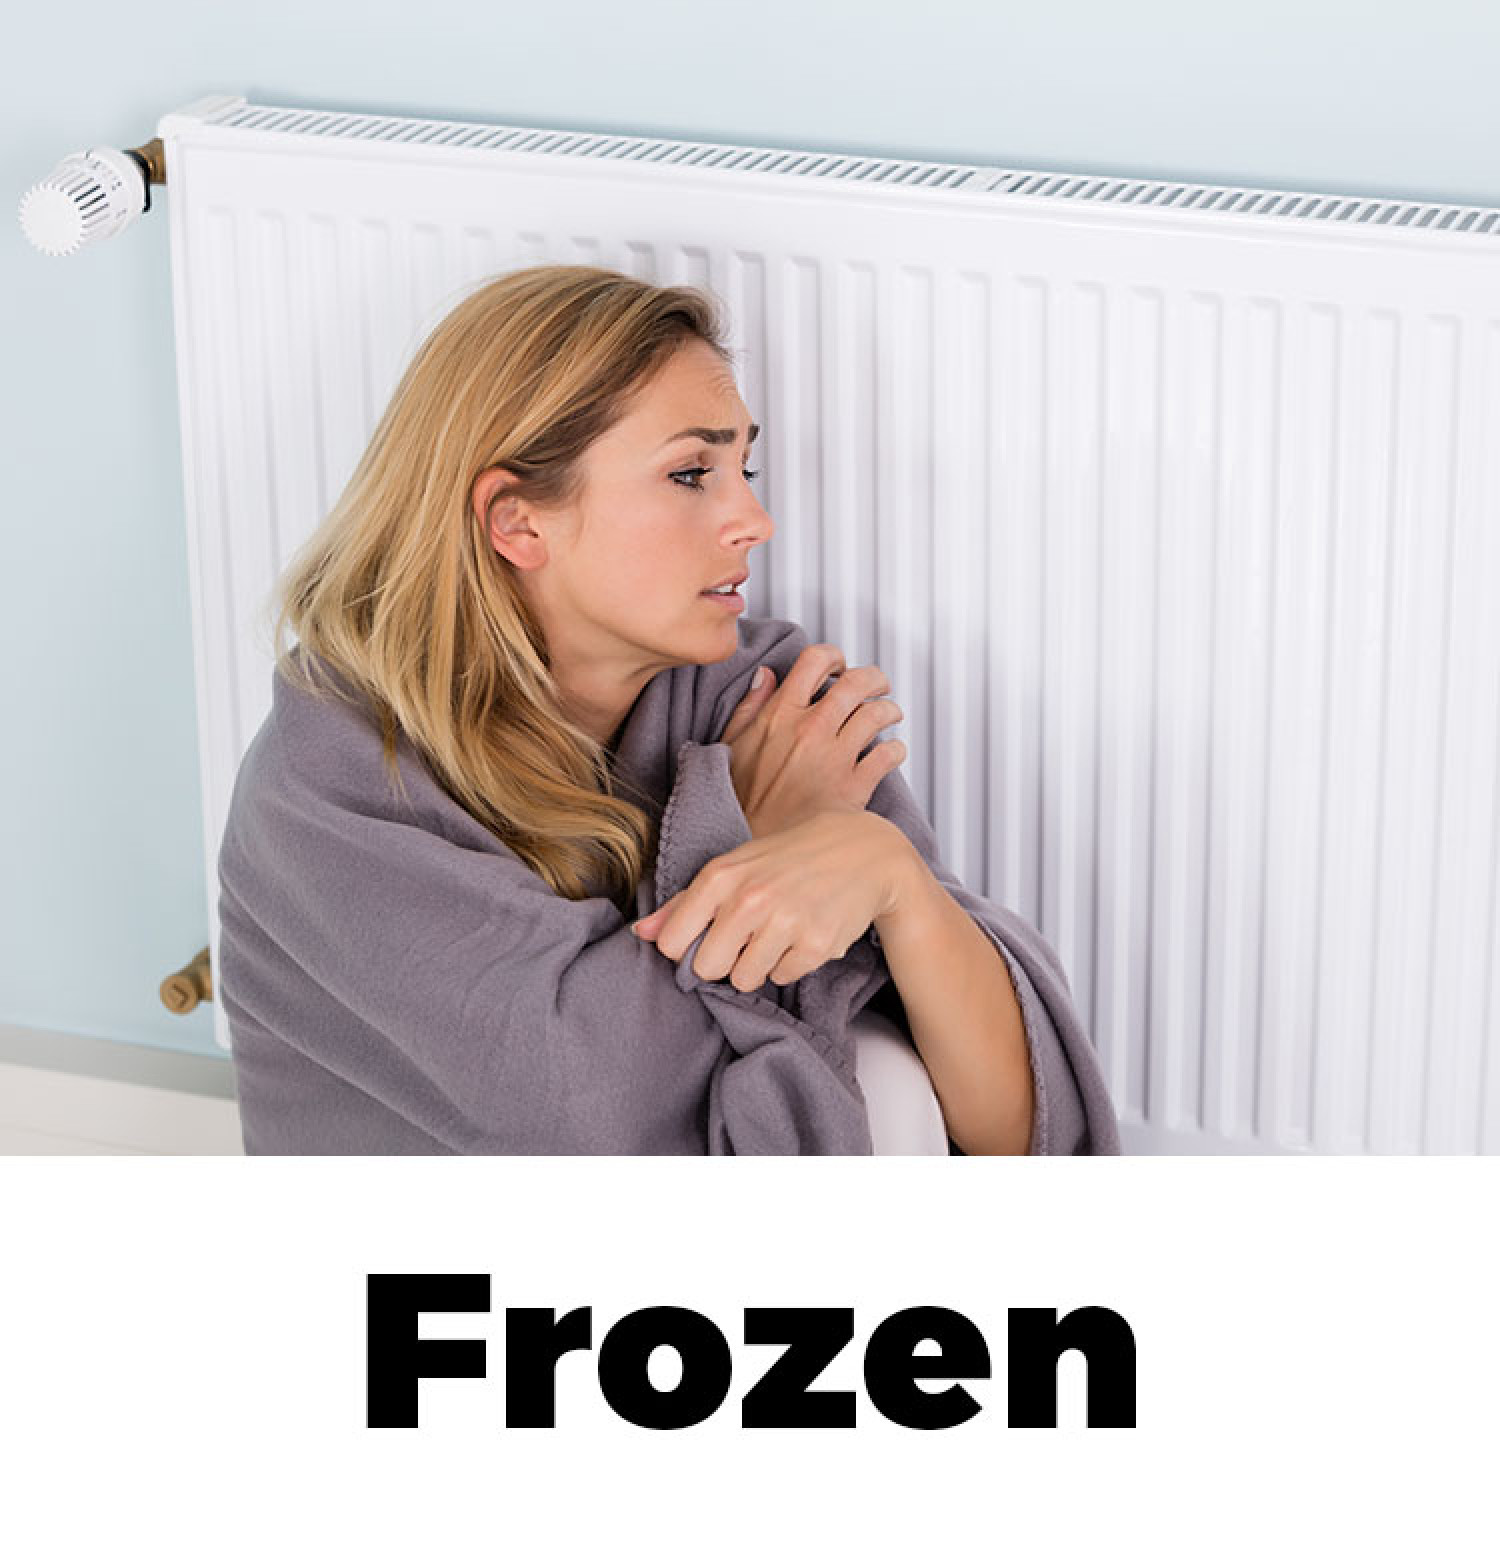 Recreating Disney Films at Home: Frozen Infographic